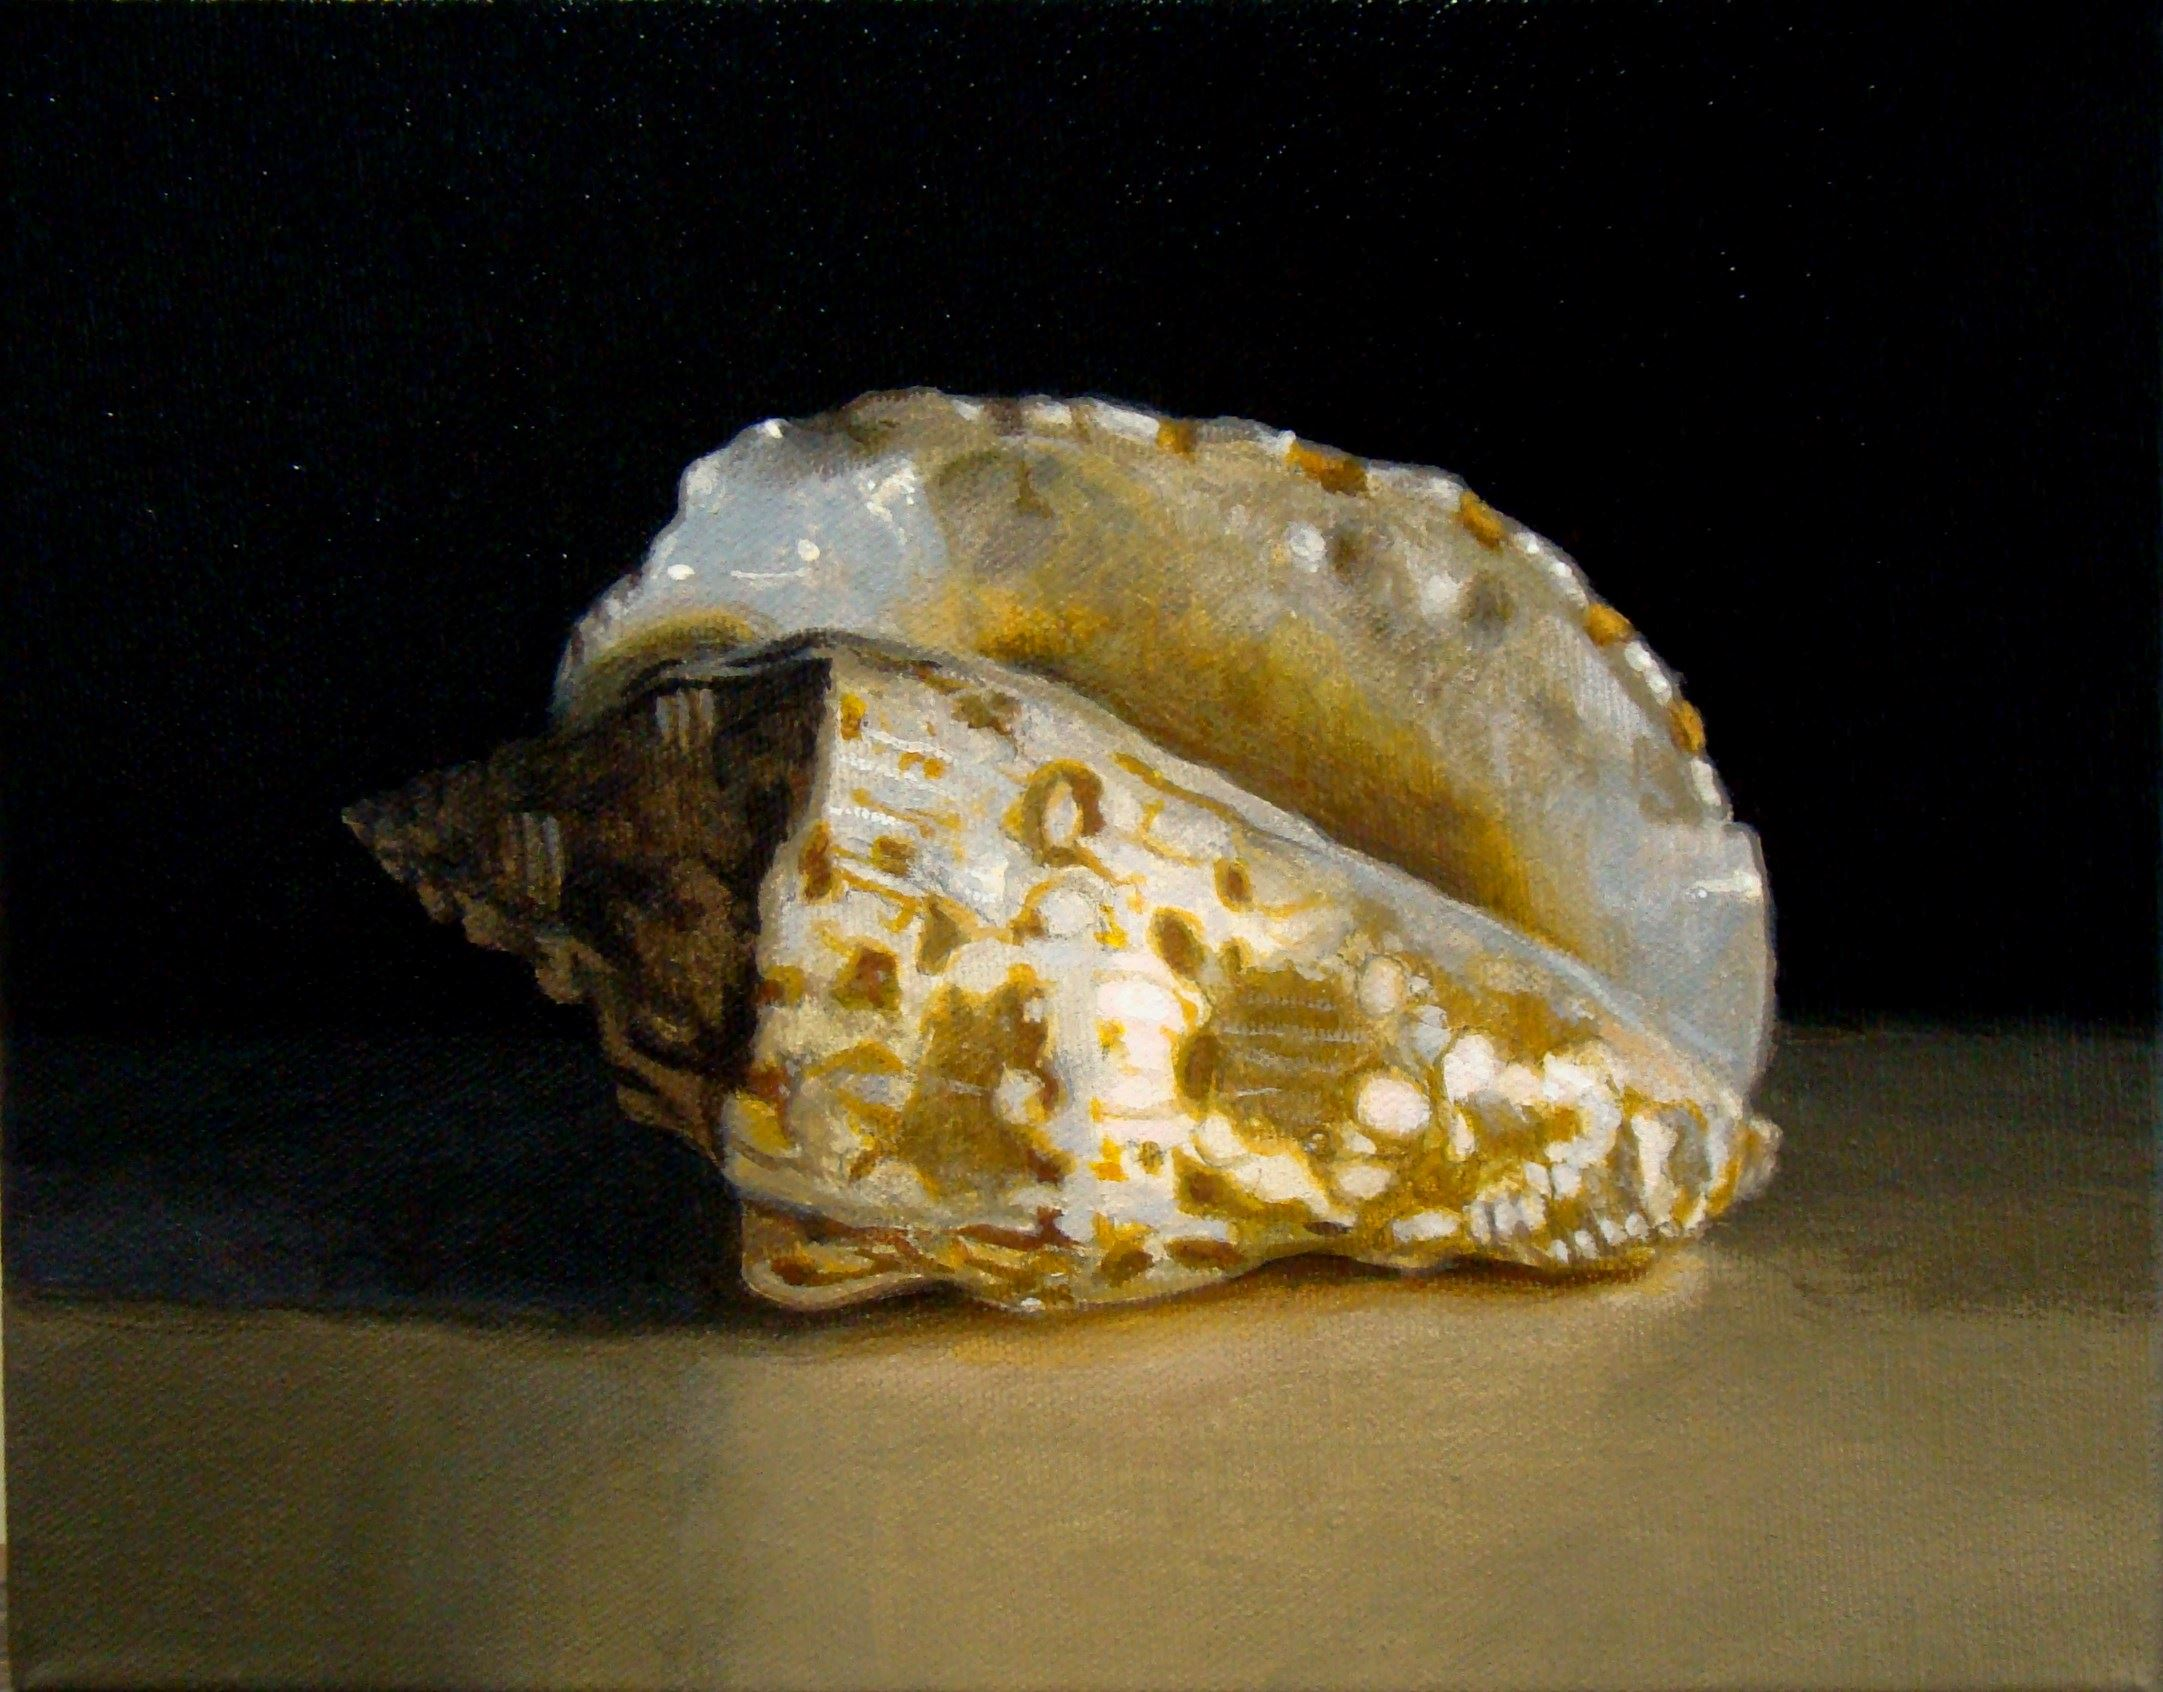 Shell IV by James Warwick Jones at The Charles H. Taylor Visual Arts Center